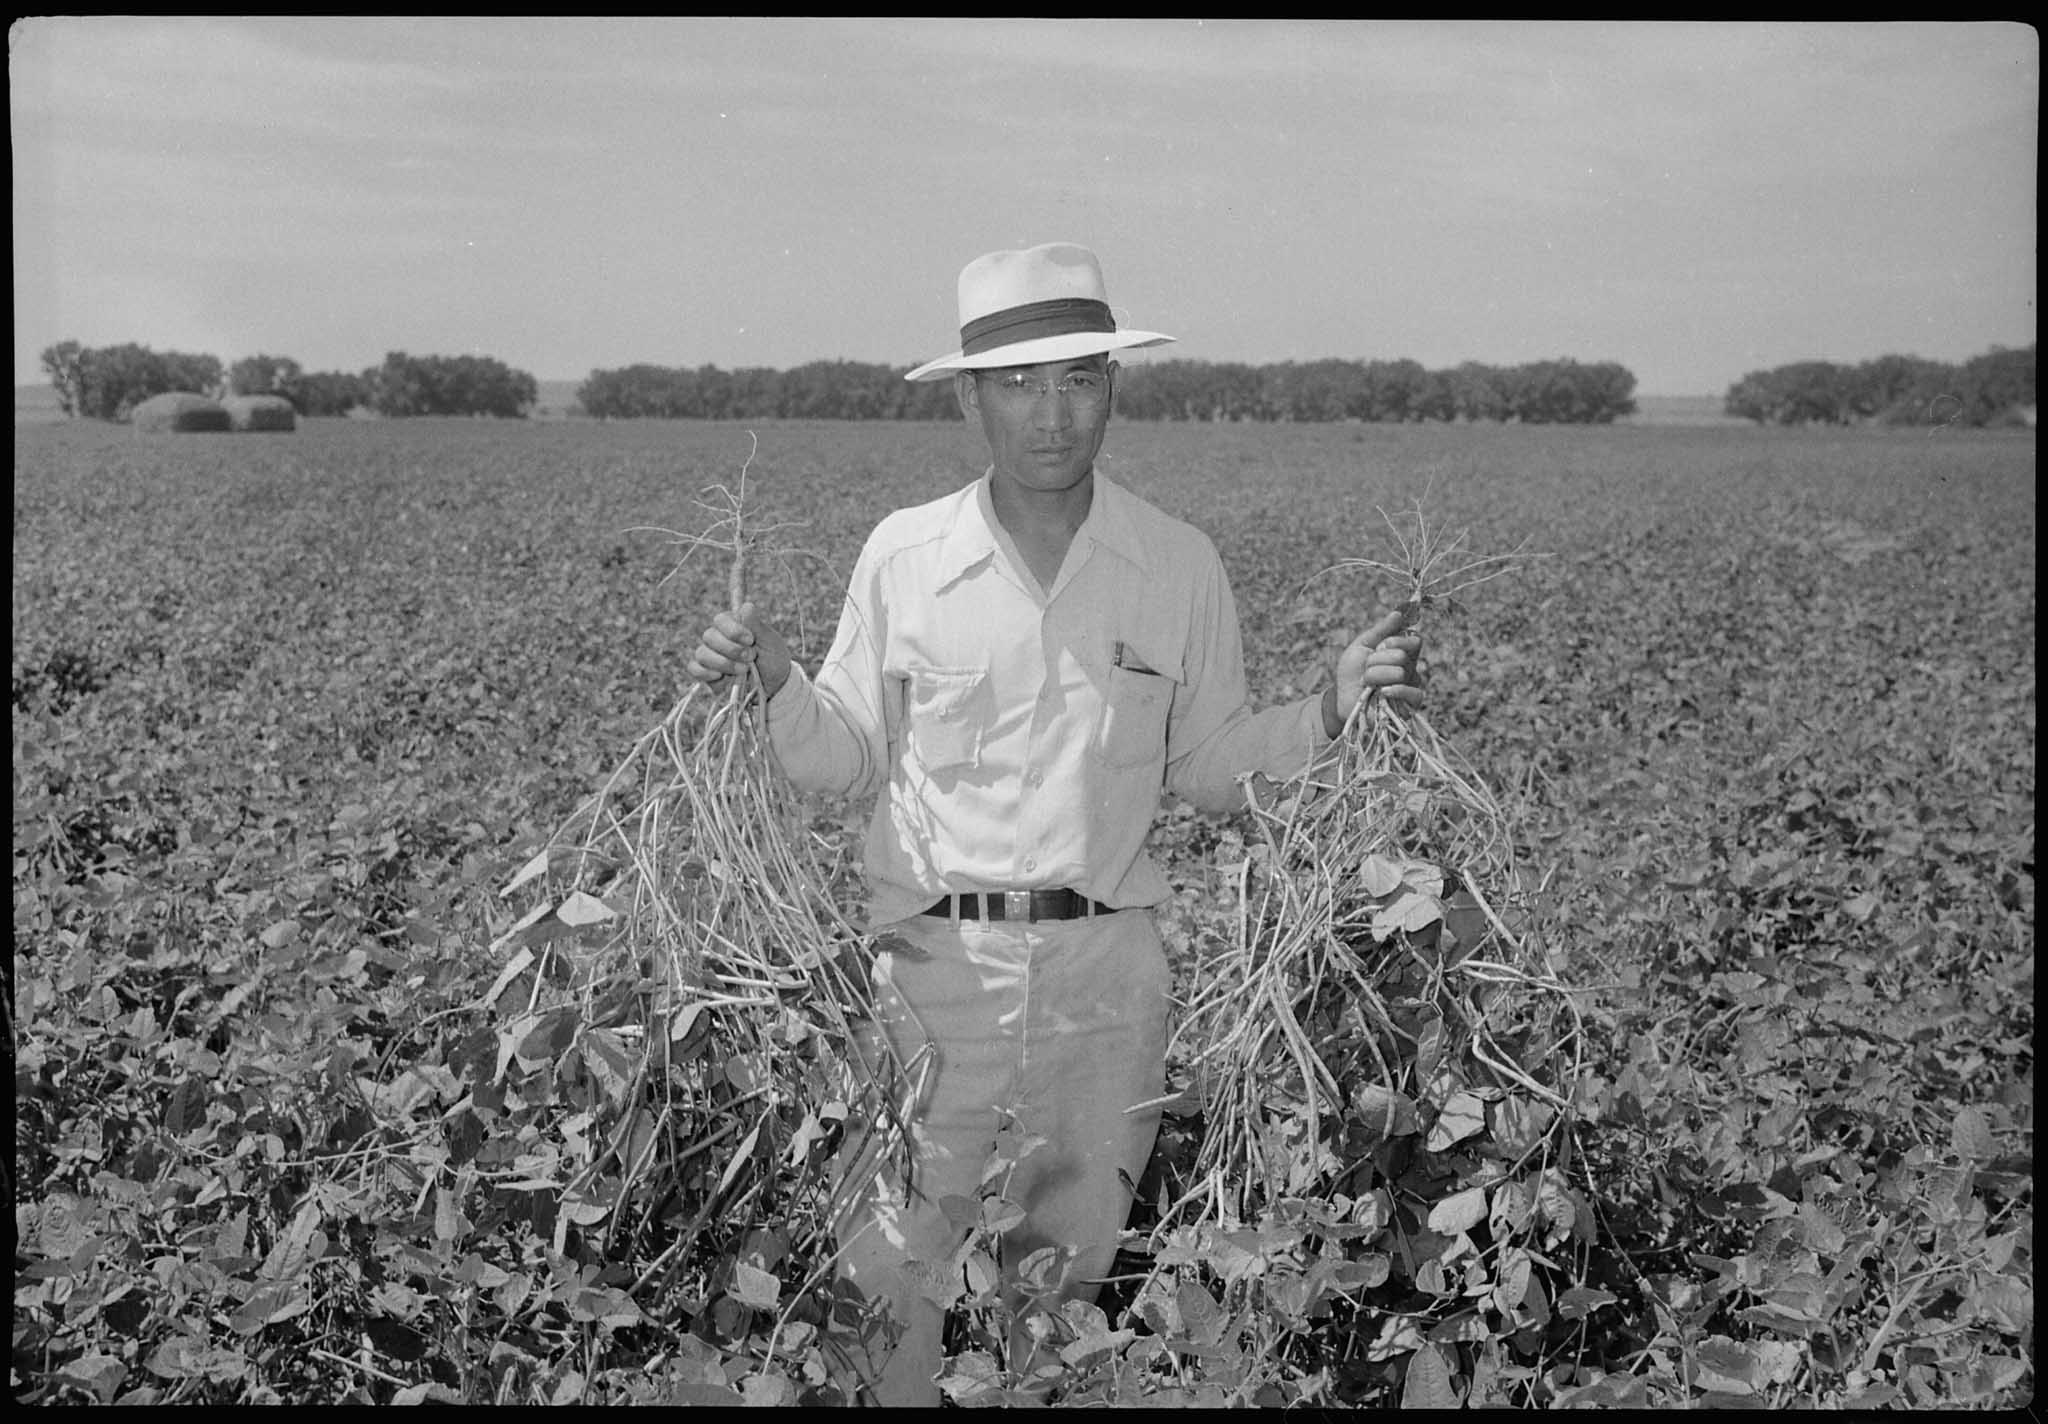 Man holding crops in a field